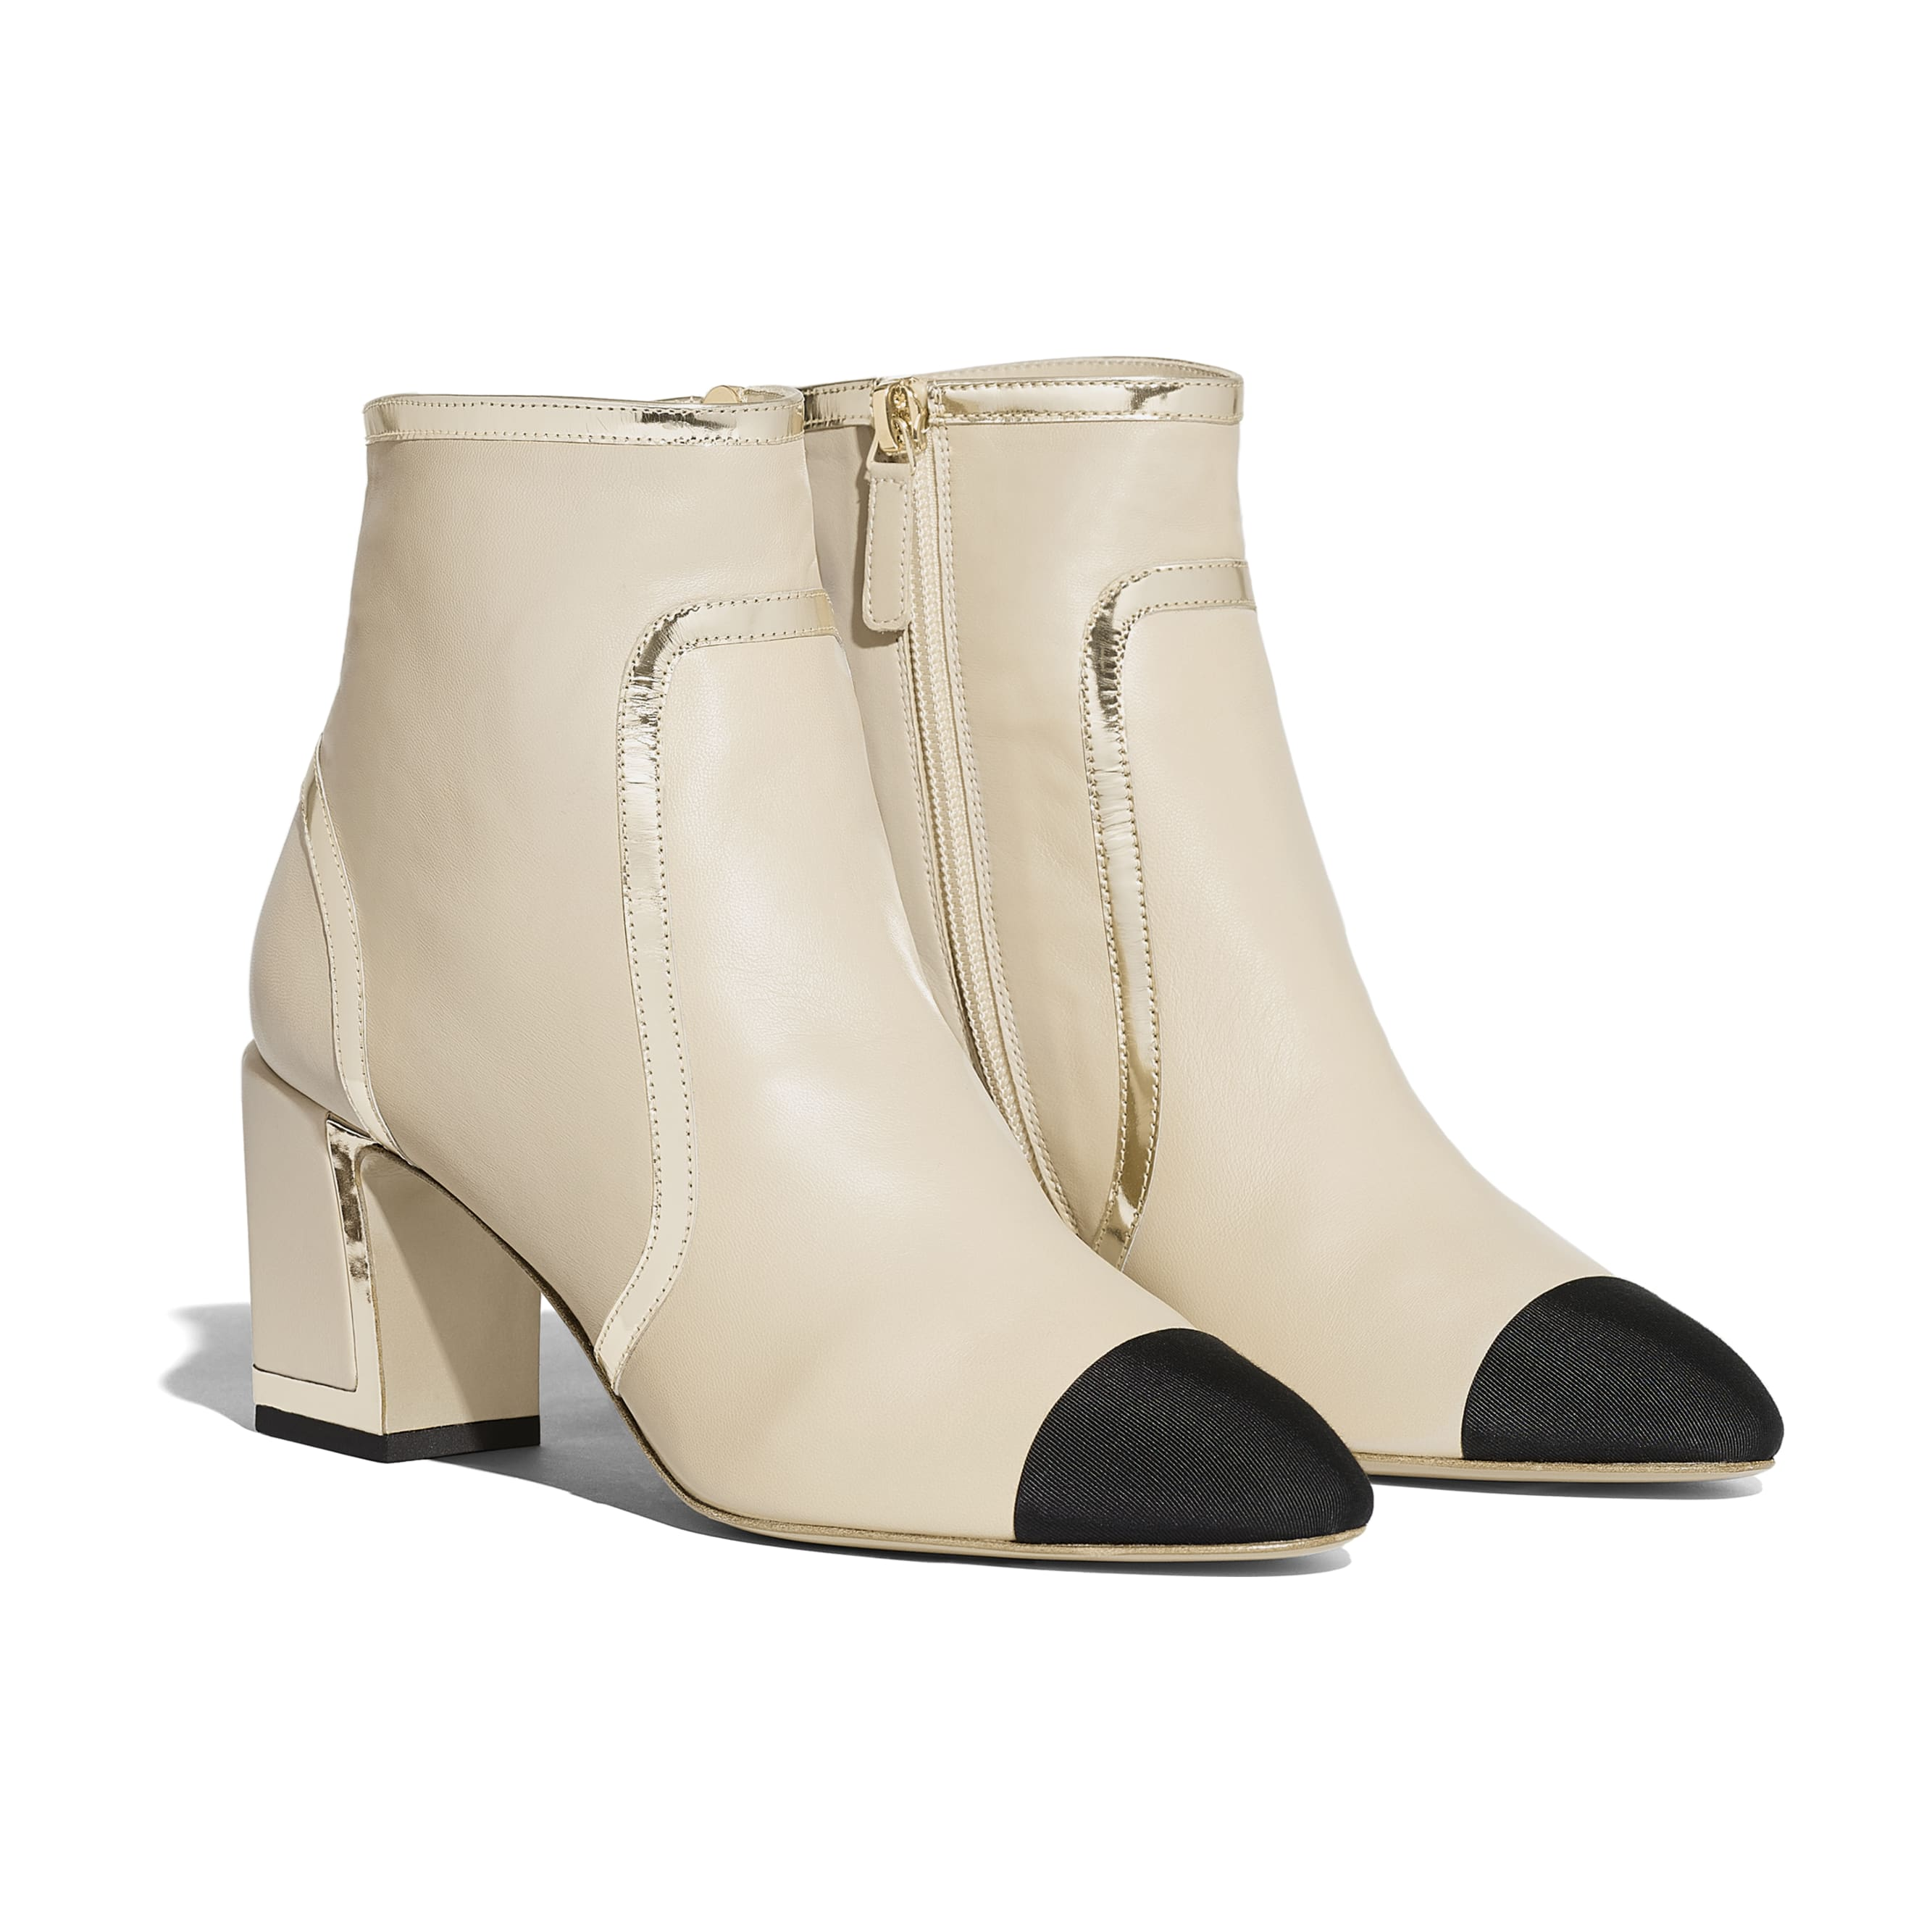 Ankle Boots - Beige & Black - Laminated Lambskin - Alternative view - see standard sized version